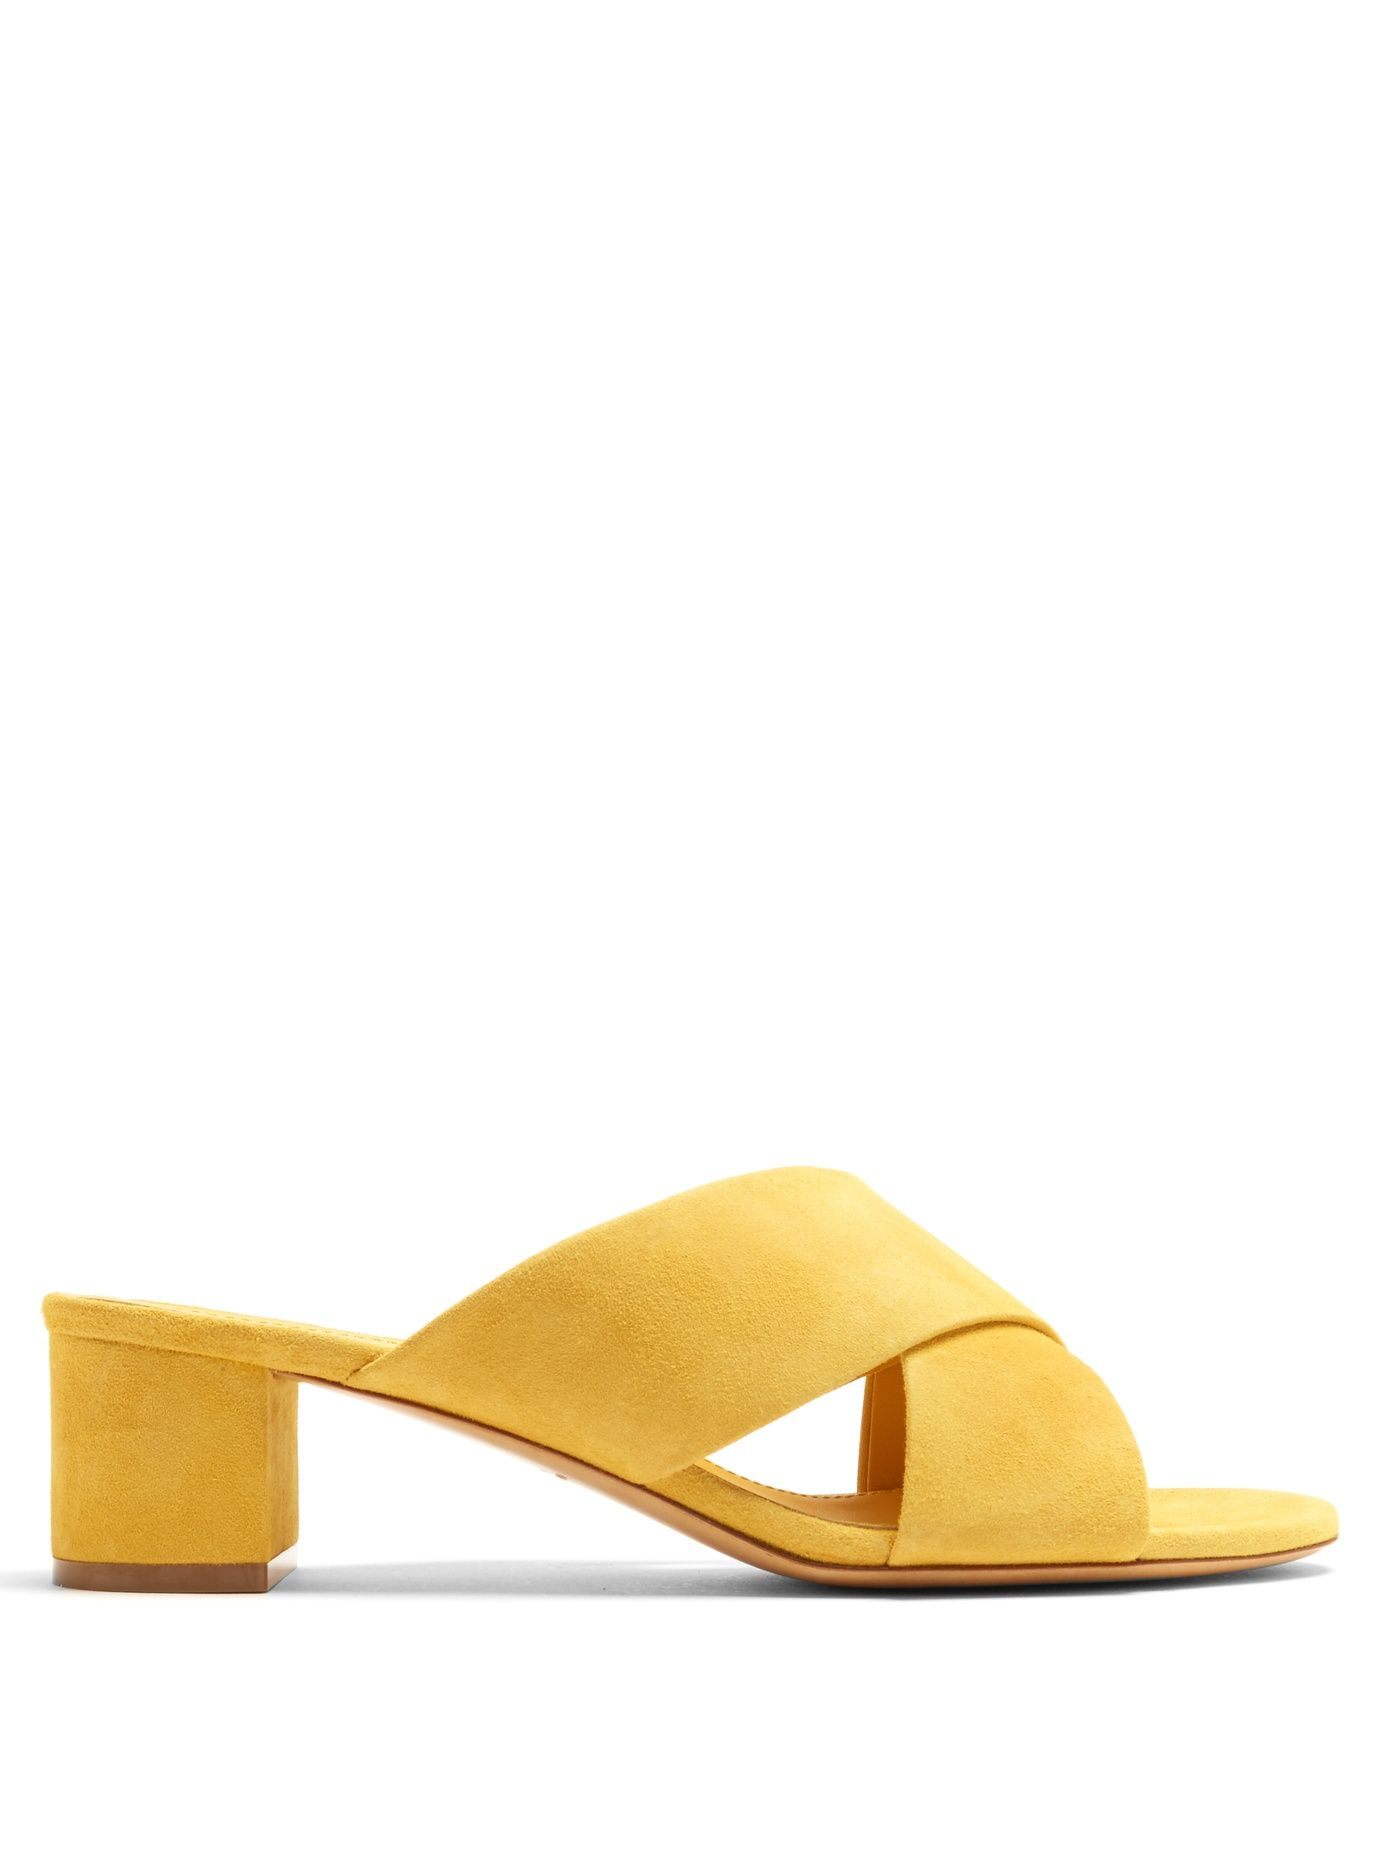 Mansur Gavriel Yellow Suede Crossover Sandals